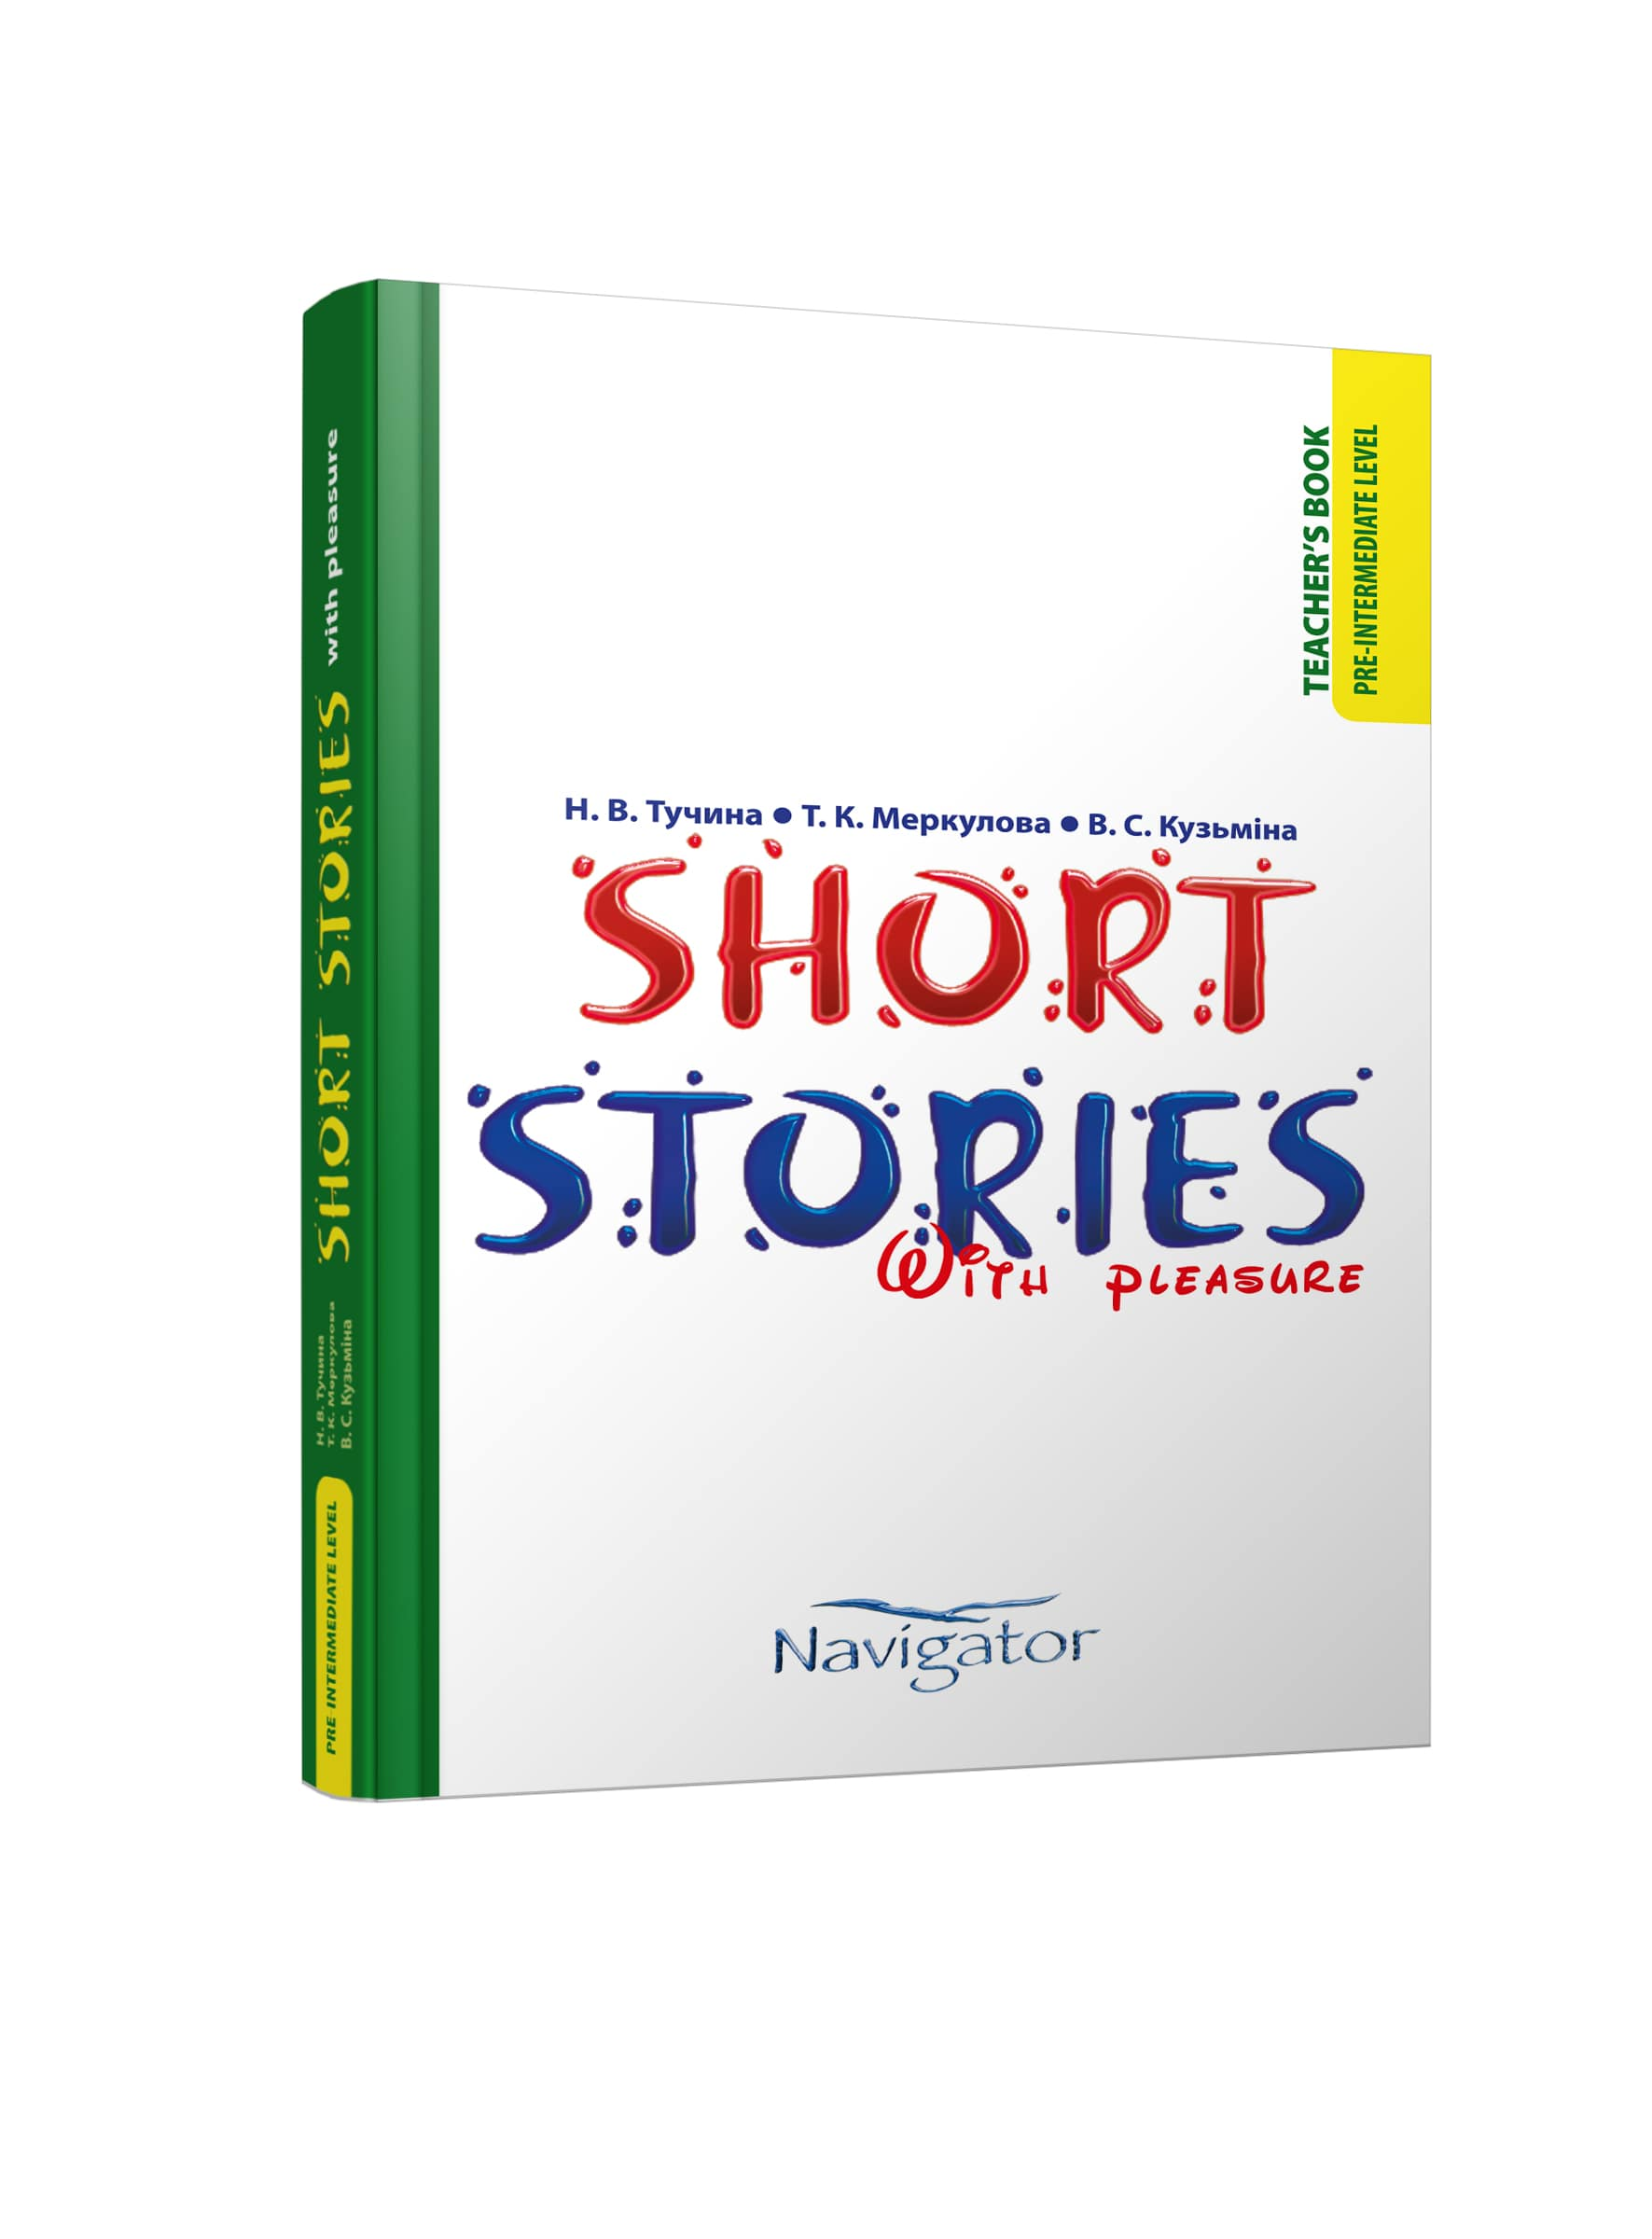 Short stories with pleasure